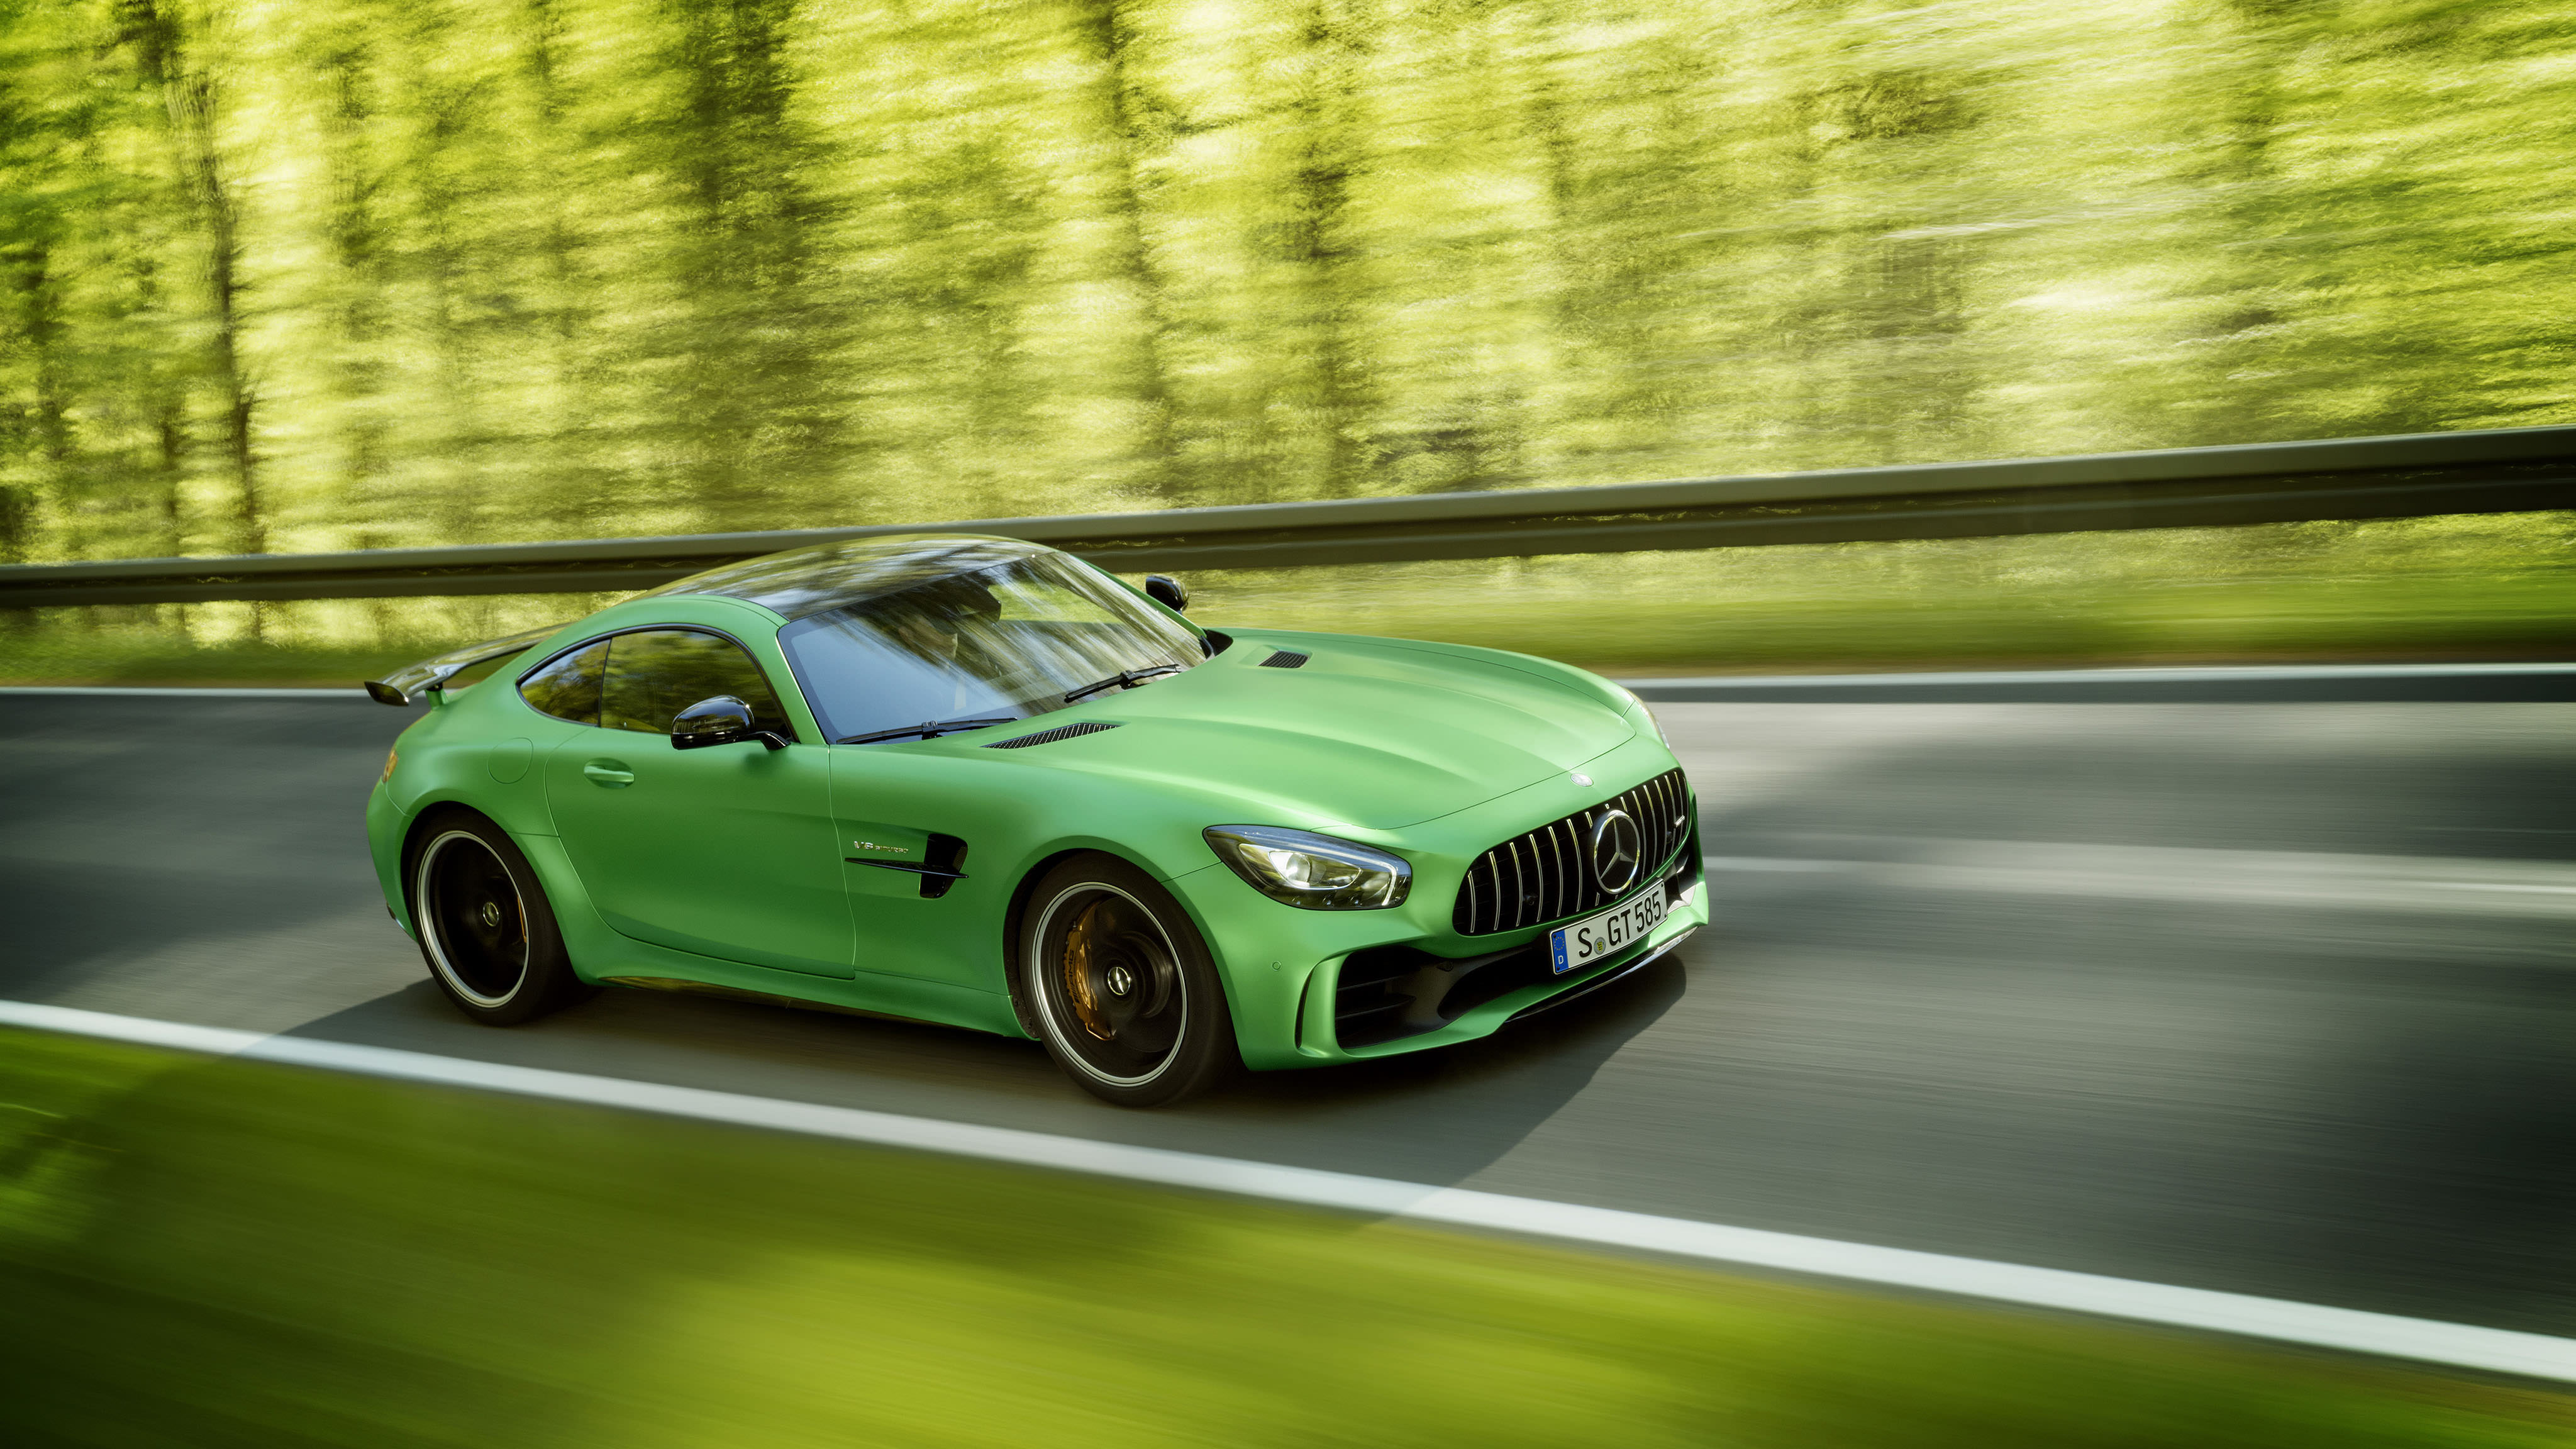 mercedes amg gt r free desktop wallpapers for widescreen. Black Bedroom Furniture Sets. Home Design Ideas